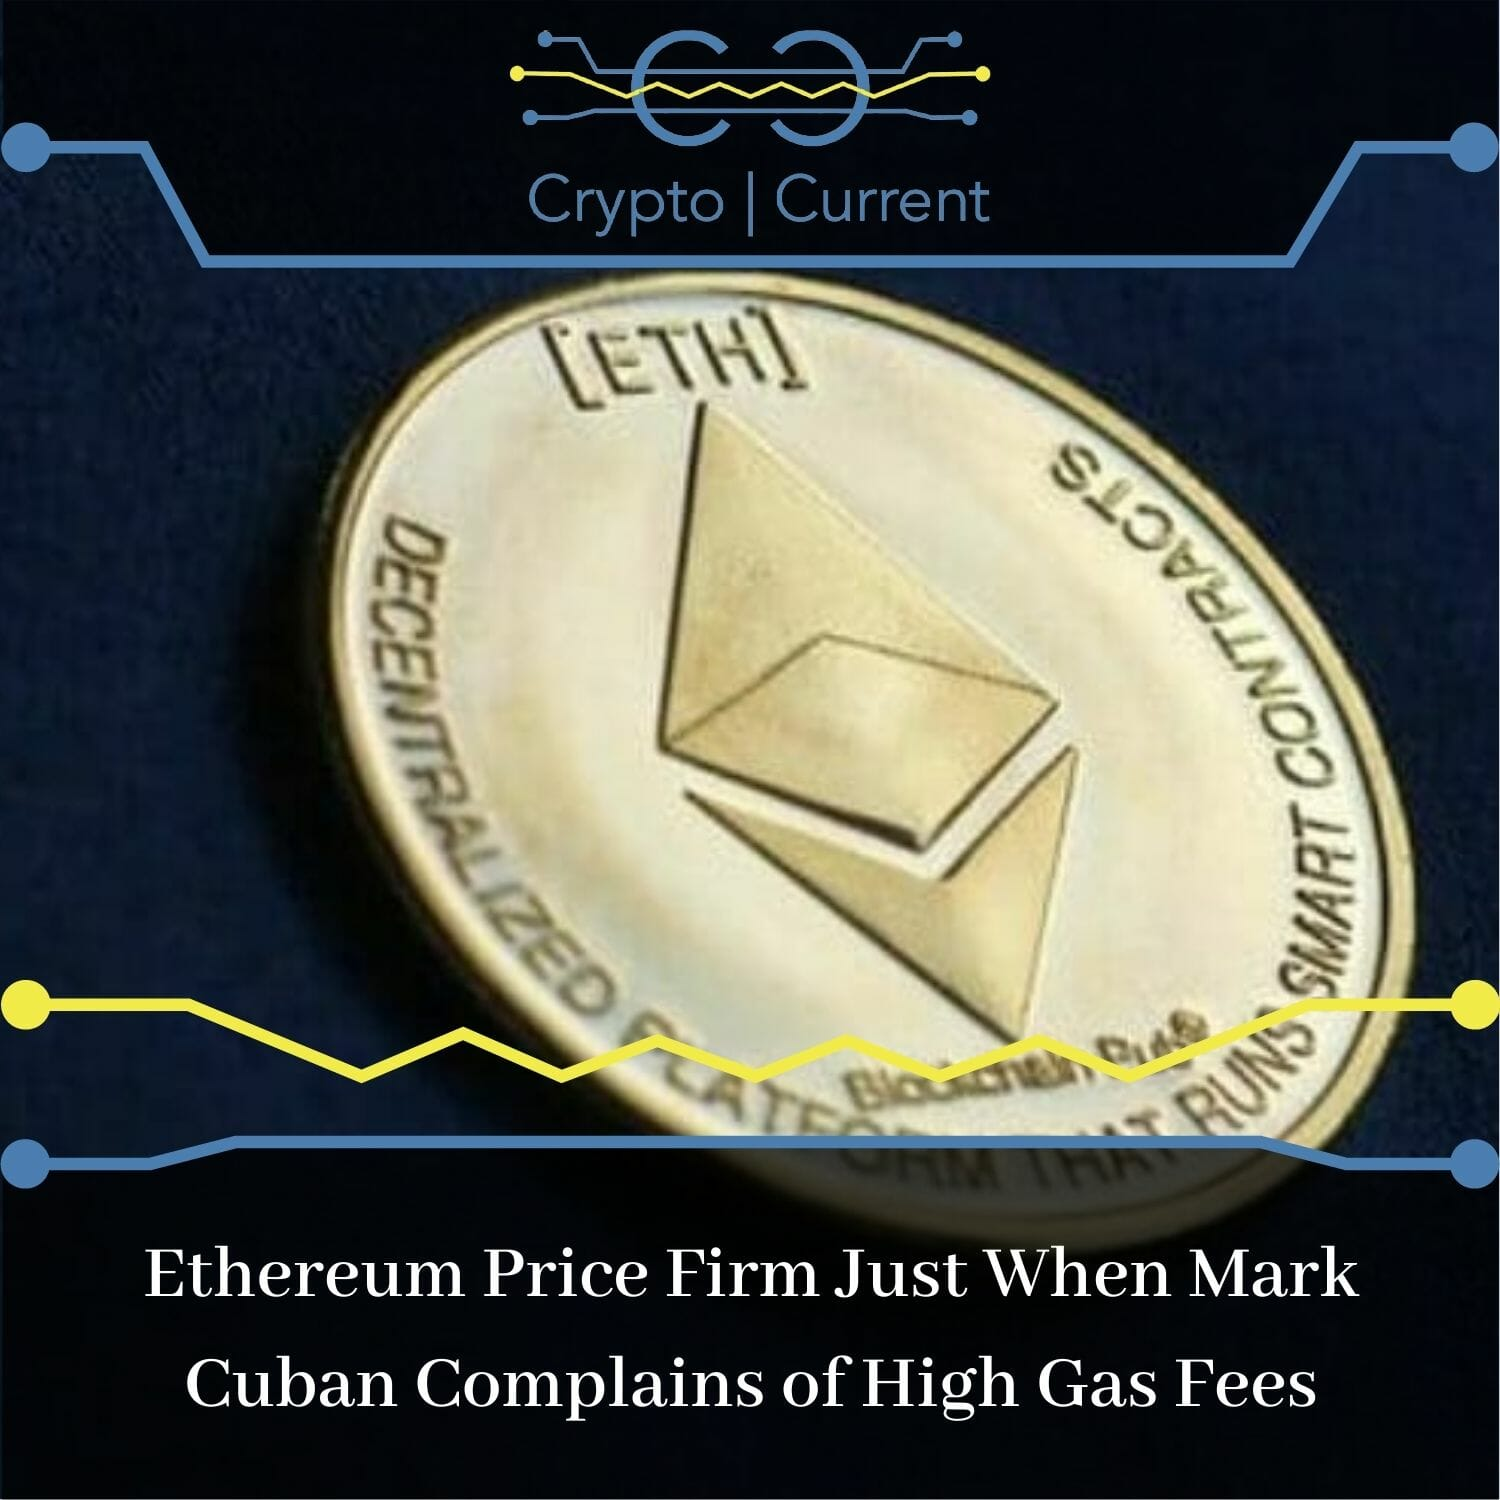 Ethereum Price Firm Just When Mark Cuban Complains of High Gas Fees